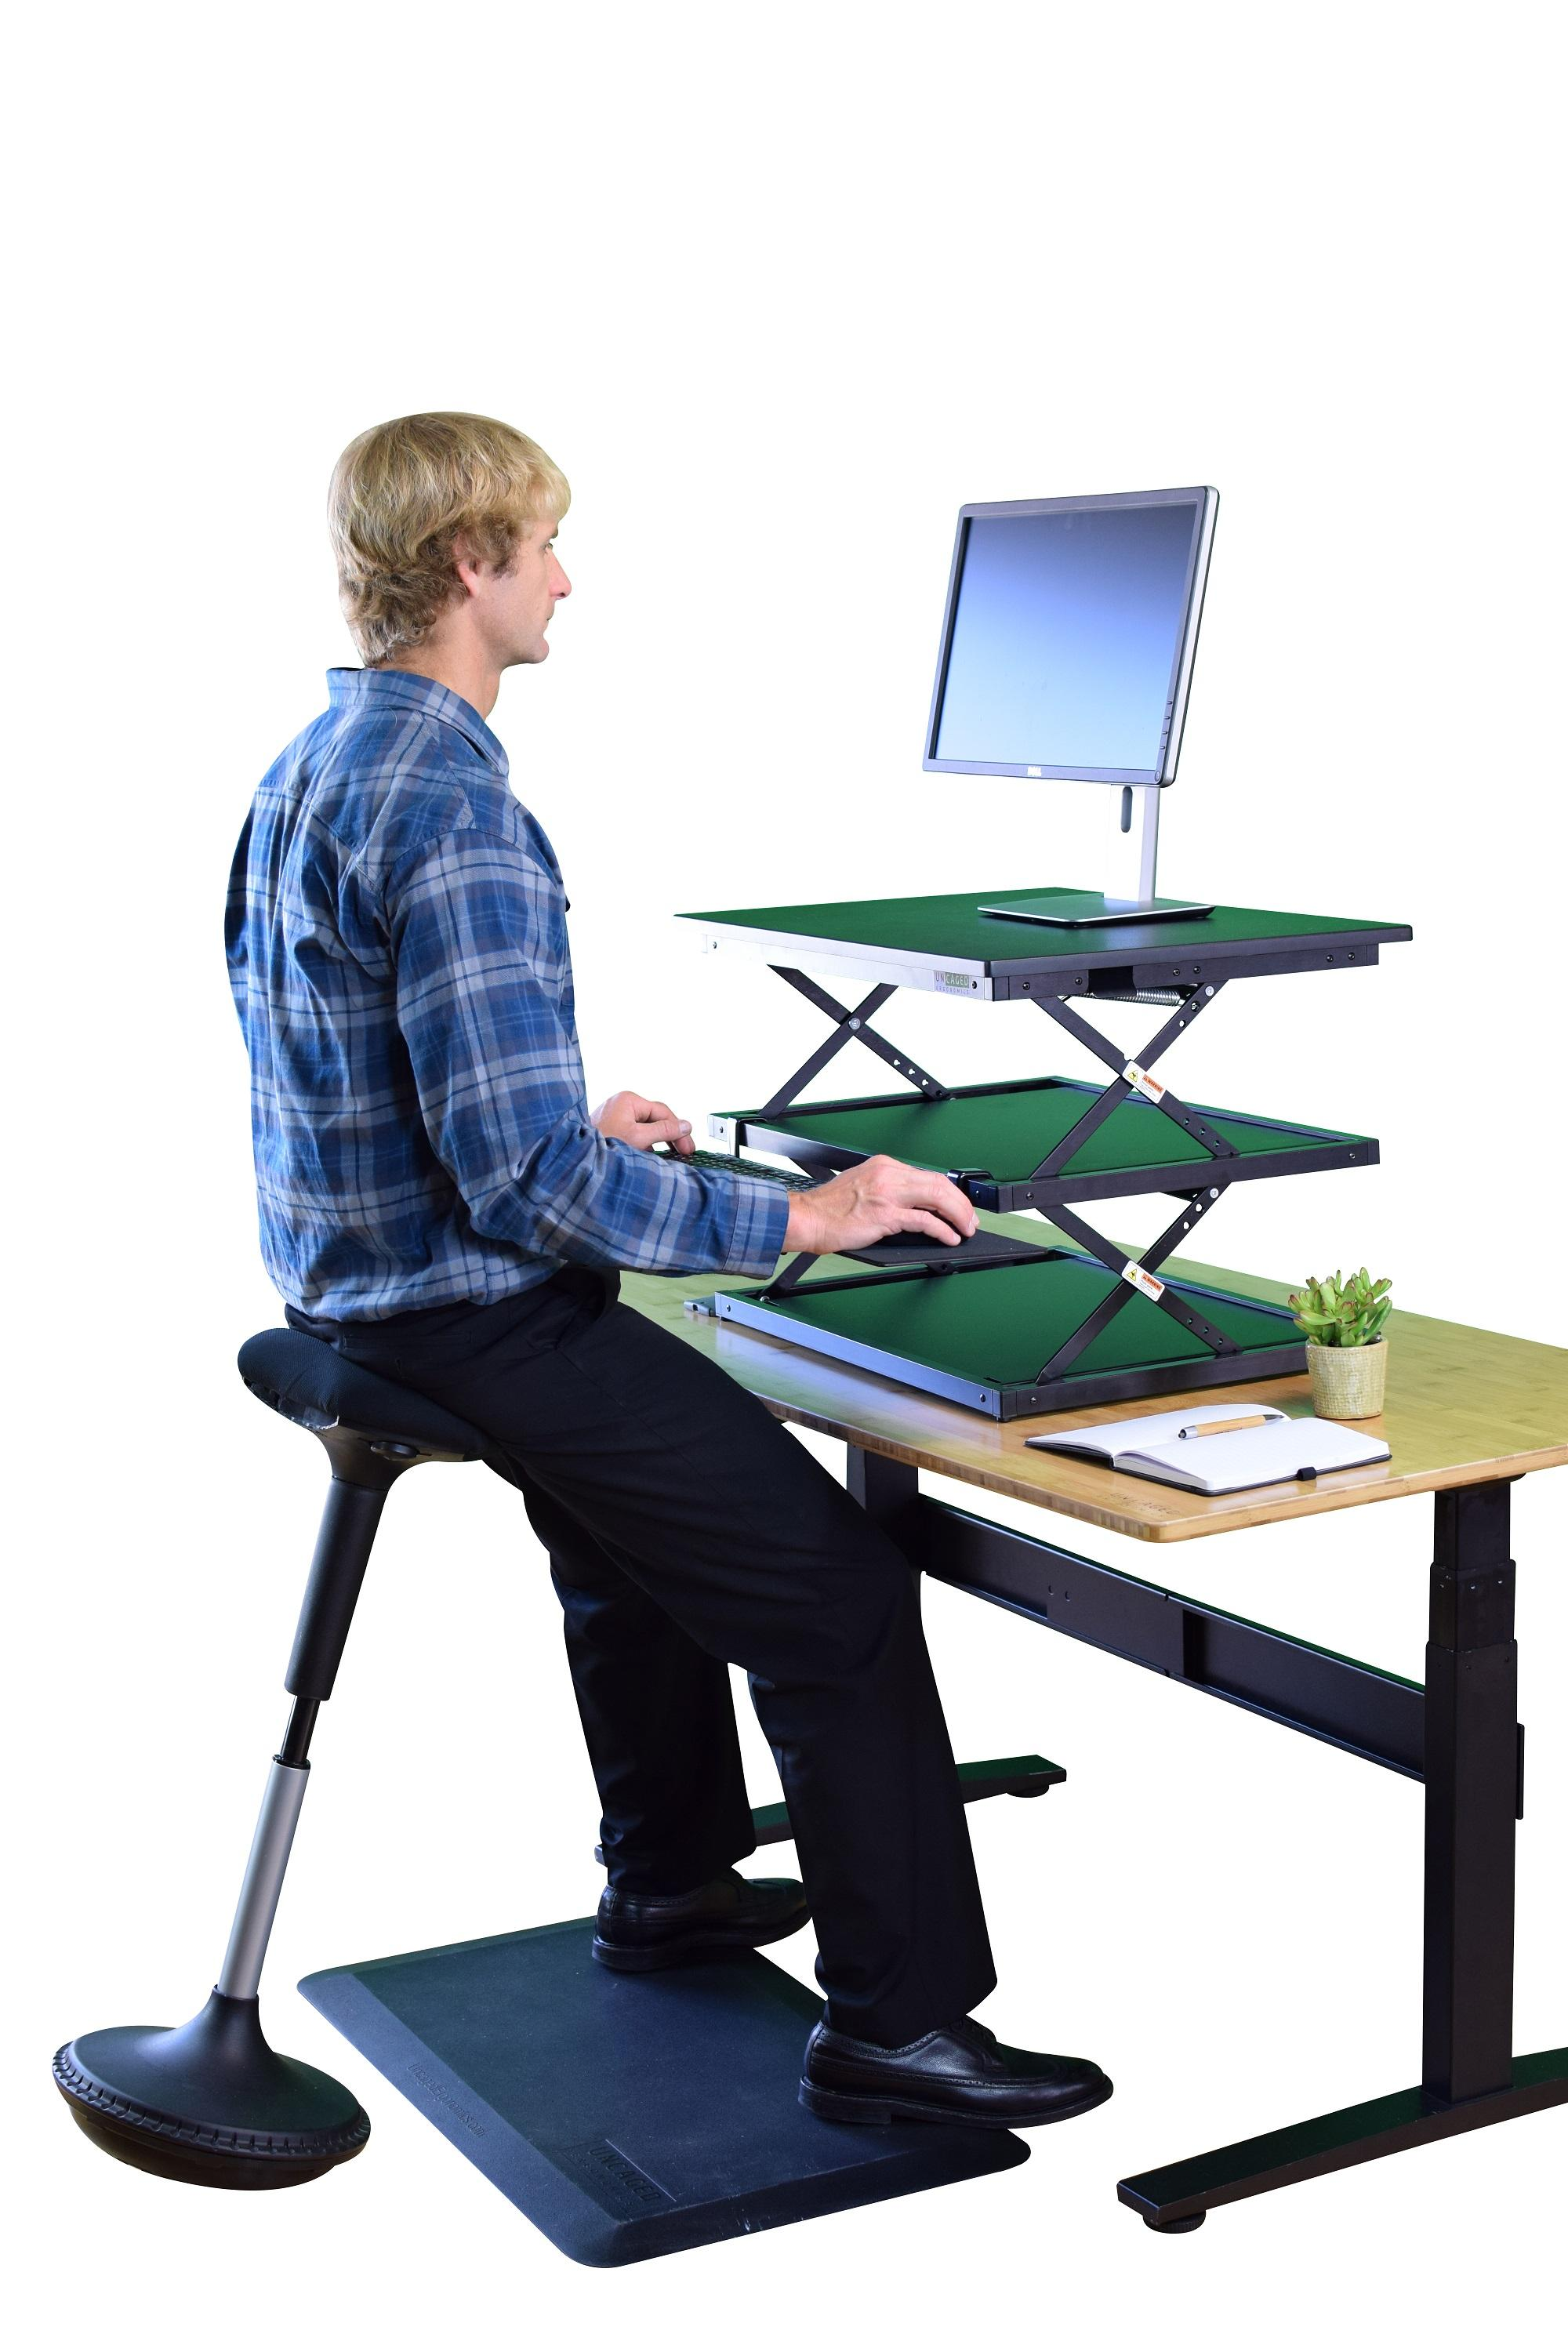 Uncaged Ergonomics Wobble Stool Adjustable Height Active